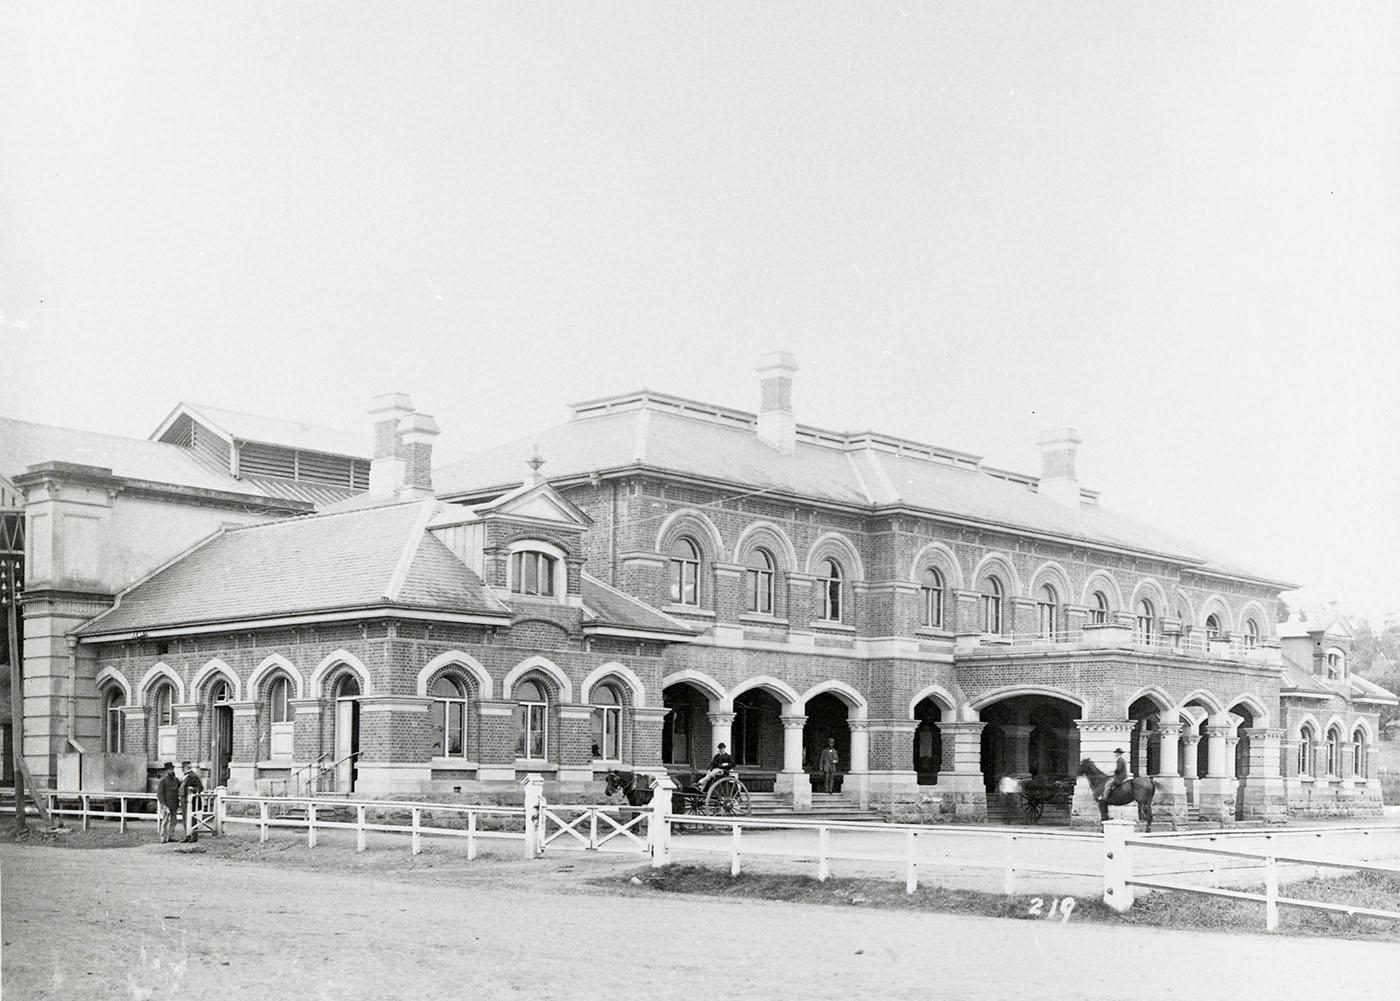 Exterior of Roma Street train stations